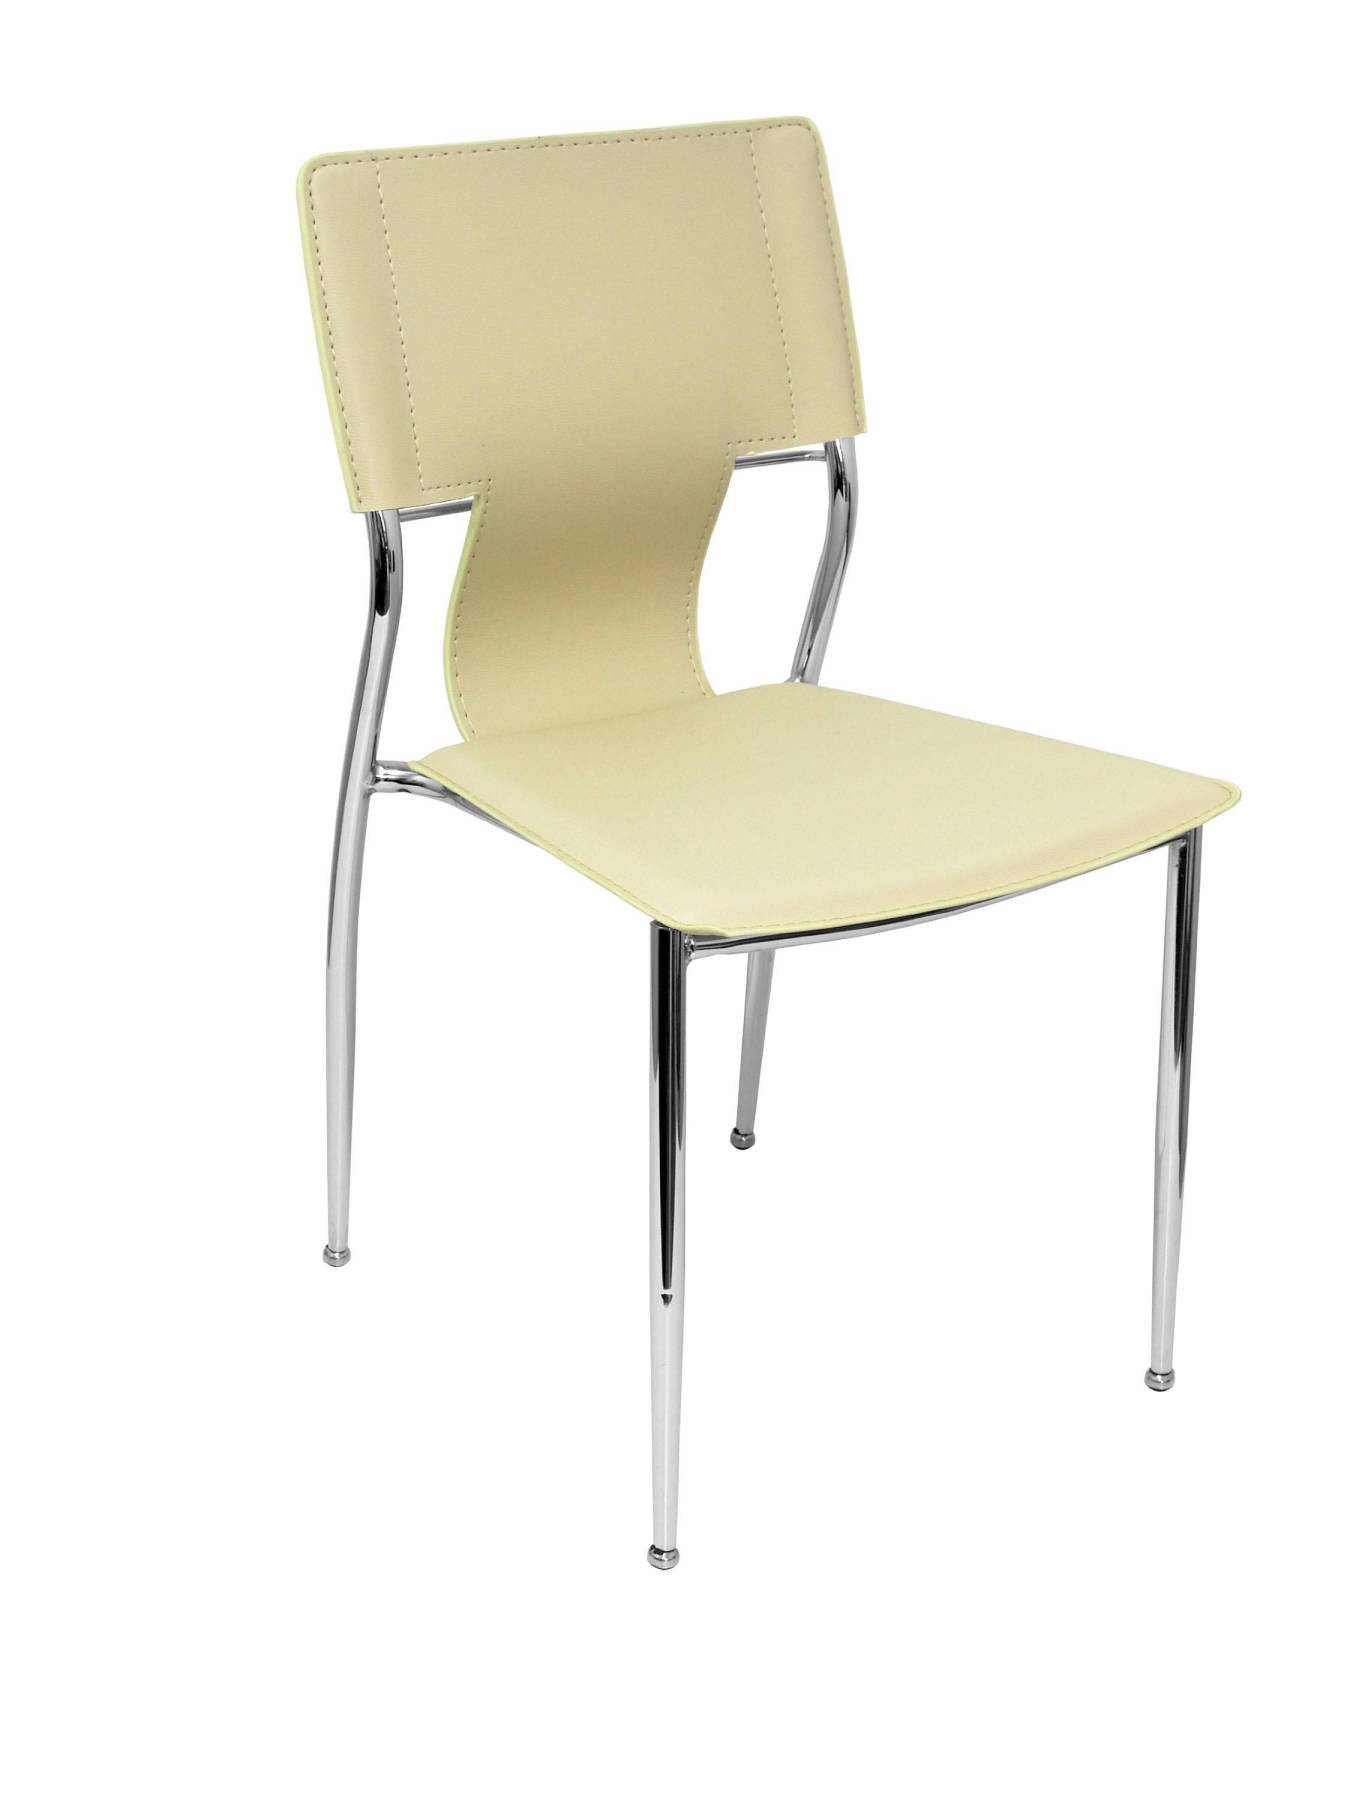 Pack 4 Chairs Confident Of 4 Legs With Estructrua Chrome Seat And Back Upholstered In Similpiel Cream PIQU